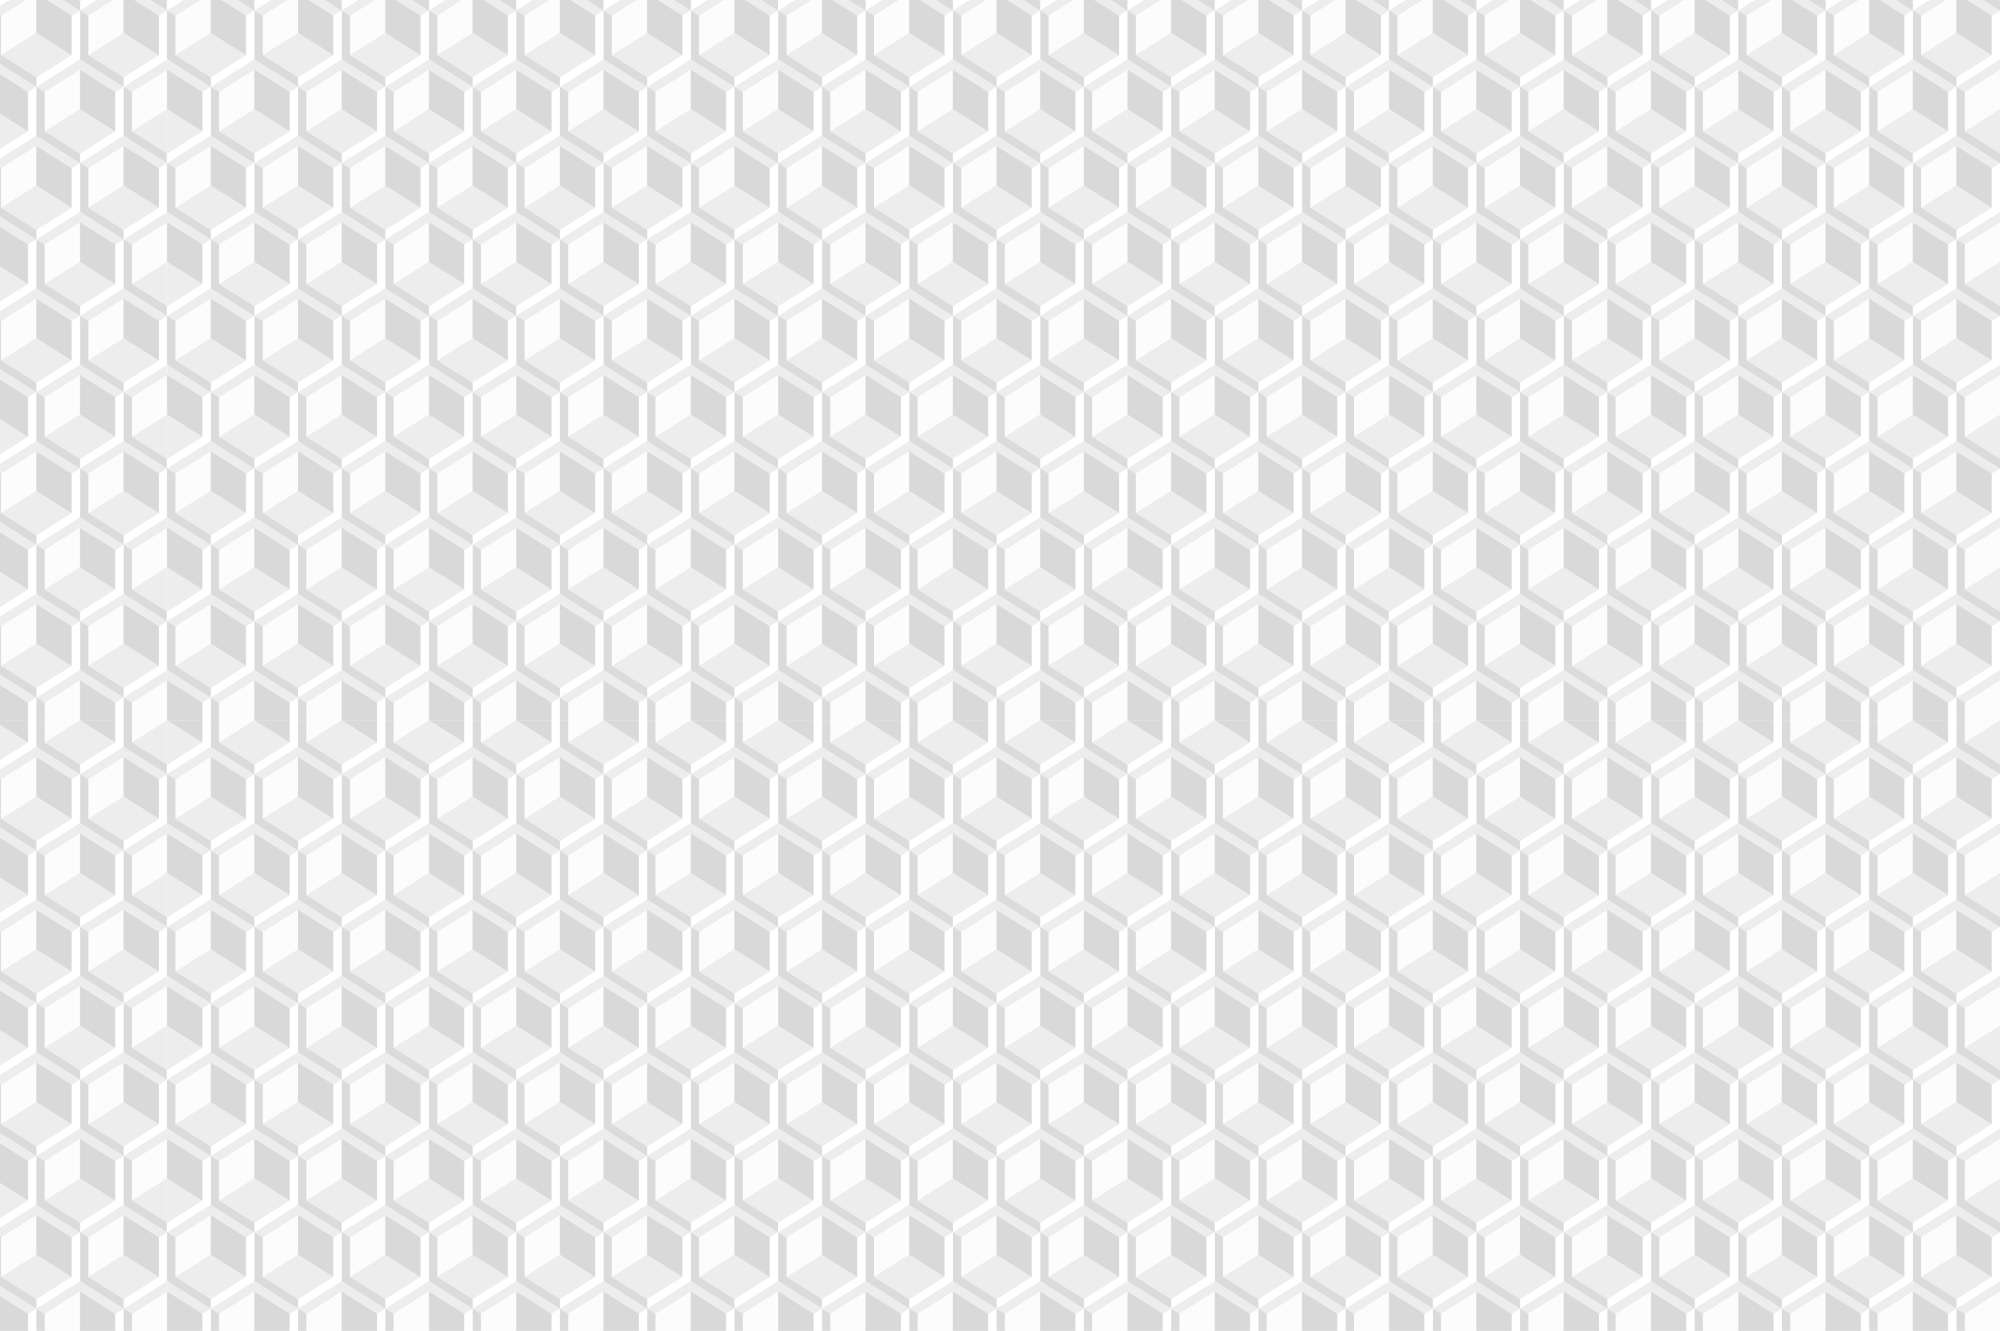 Seamless White 3d Textures. Swatches example image 13